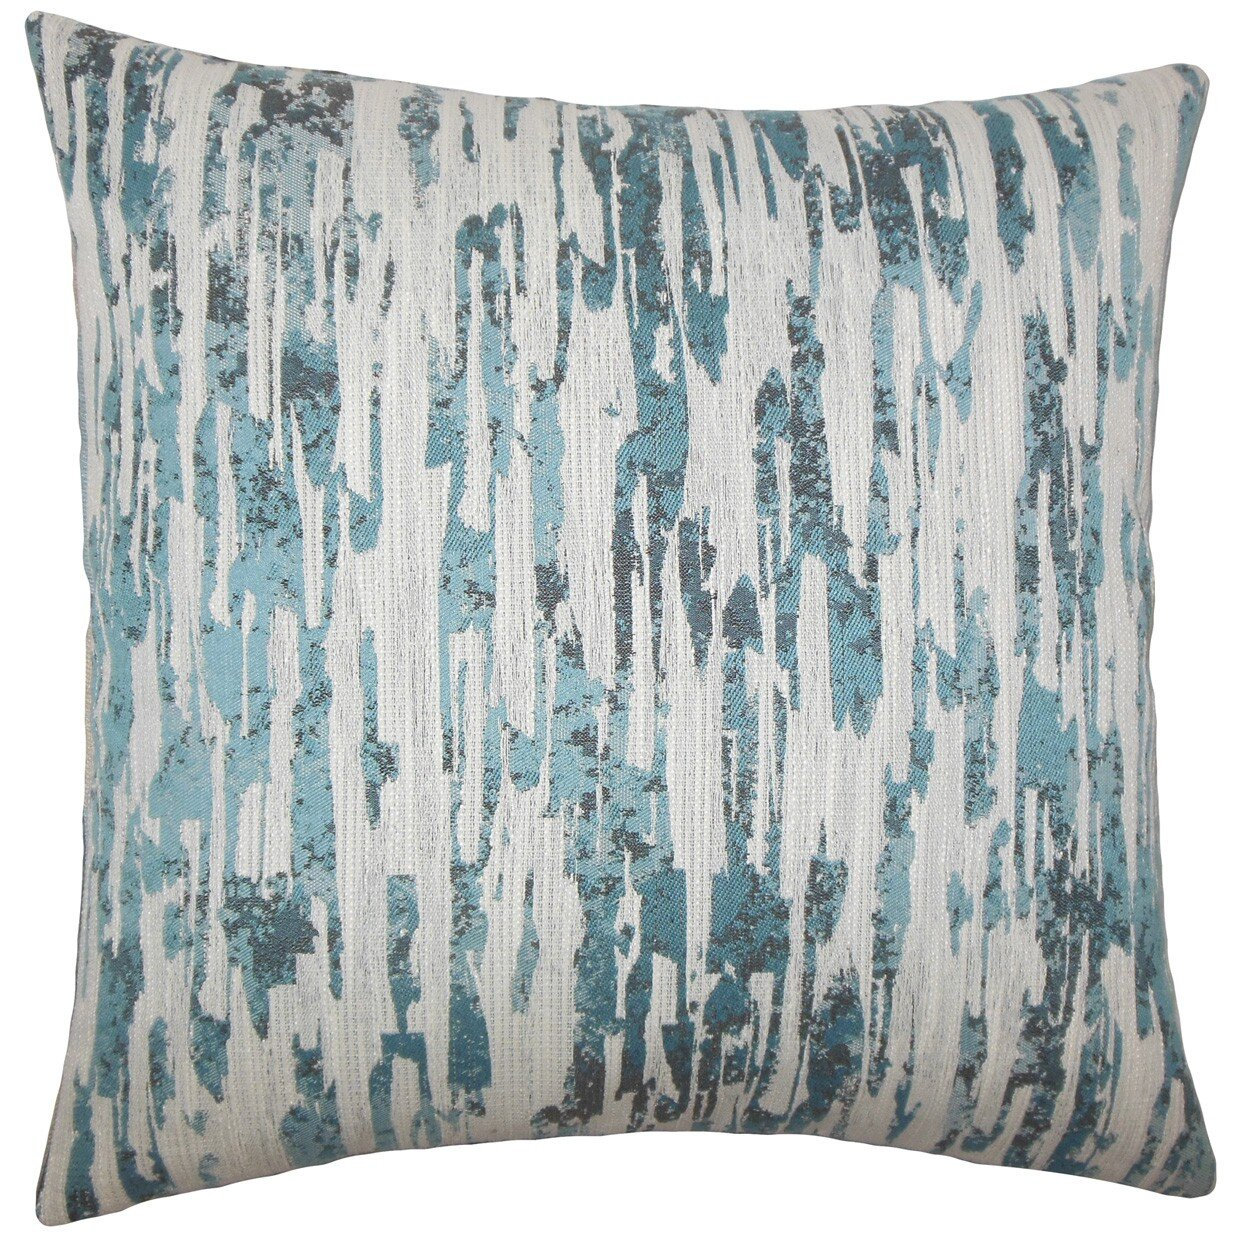 Style Sanctuary Throw Pillows You Ll Love In 2021 Wayfair